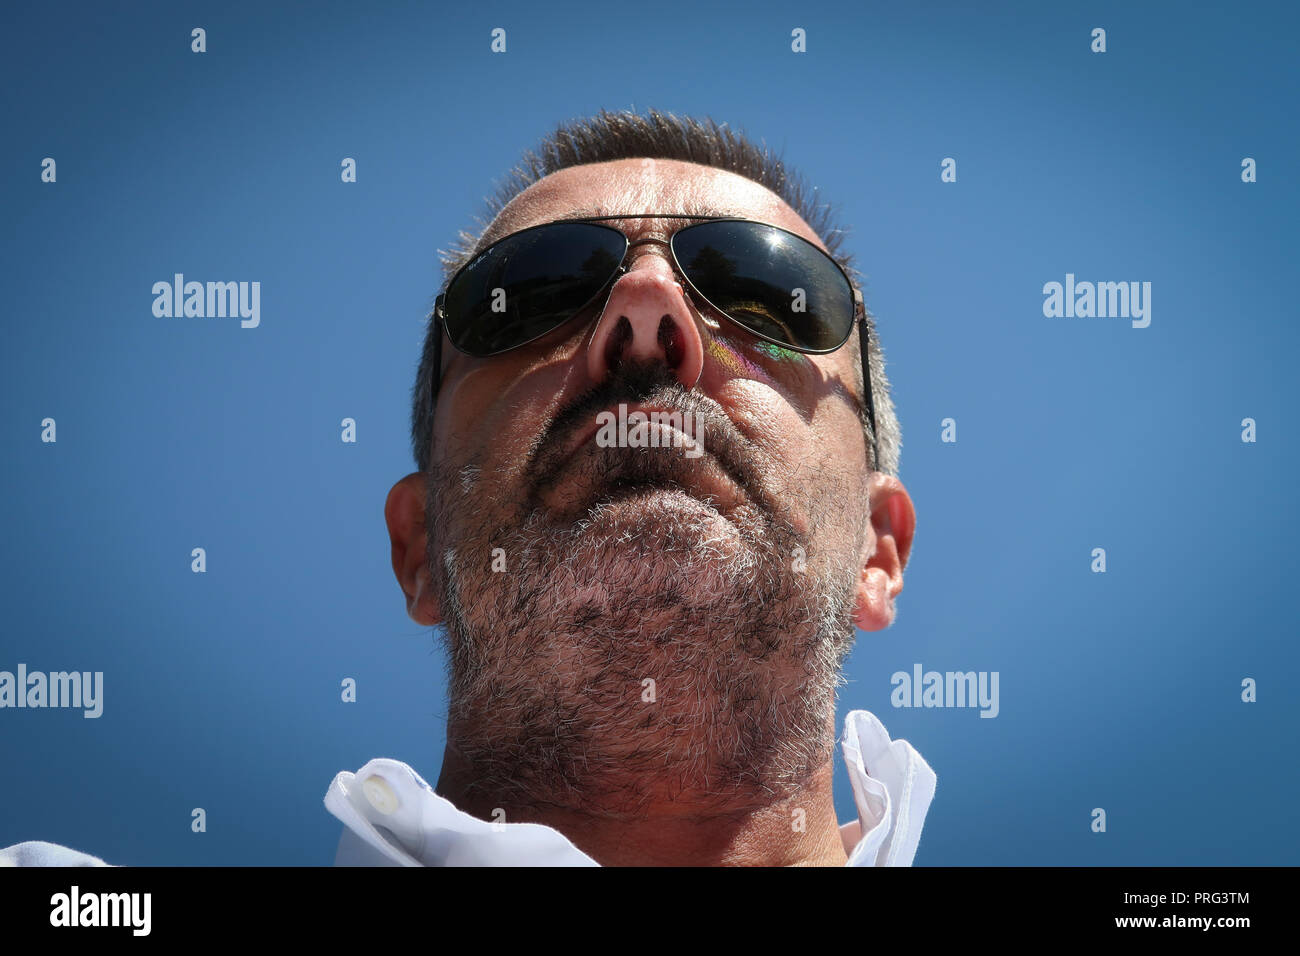 portrait of middle aged man's face with sunglasses and stubble - Stock Image